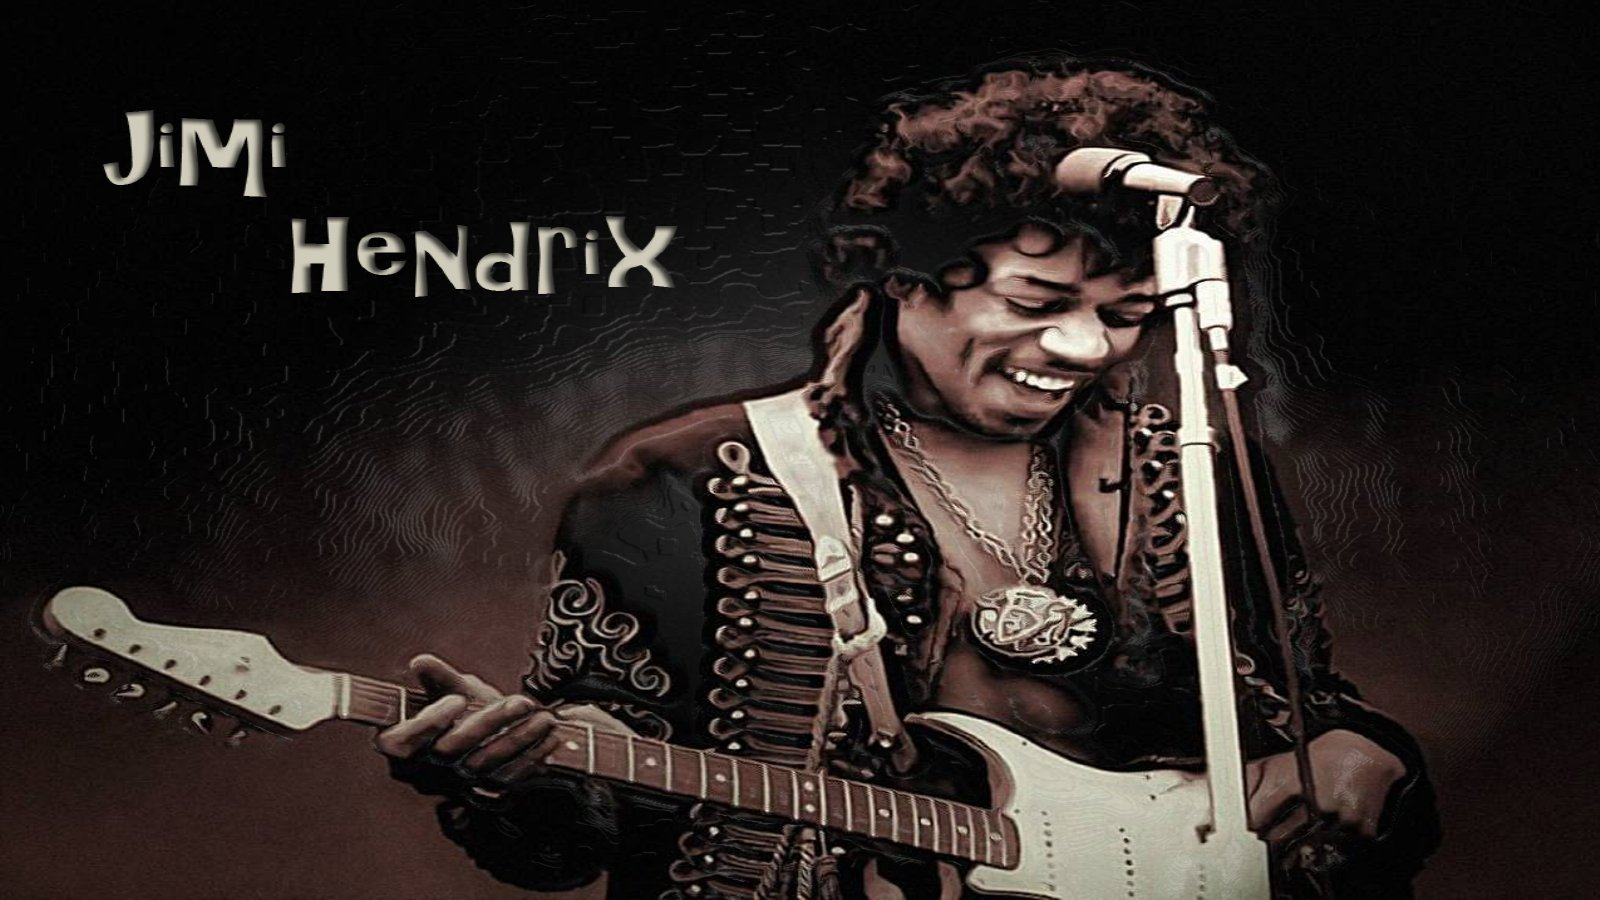 Iphone X Live Wallpaper Gif Download Jimi Hendrix 2 Wallpaper And Background 1600x900 Id